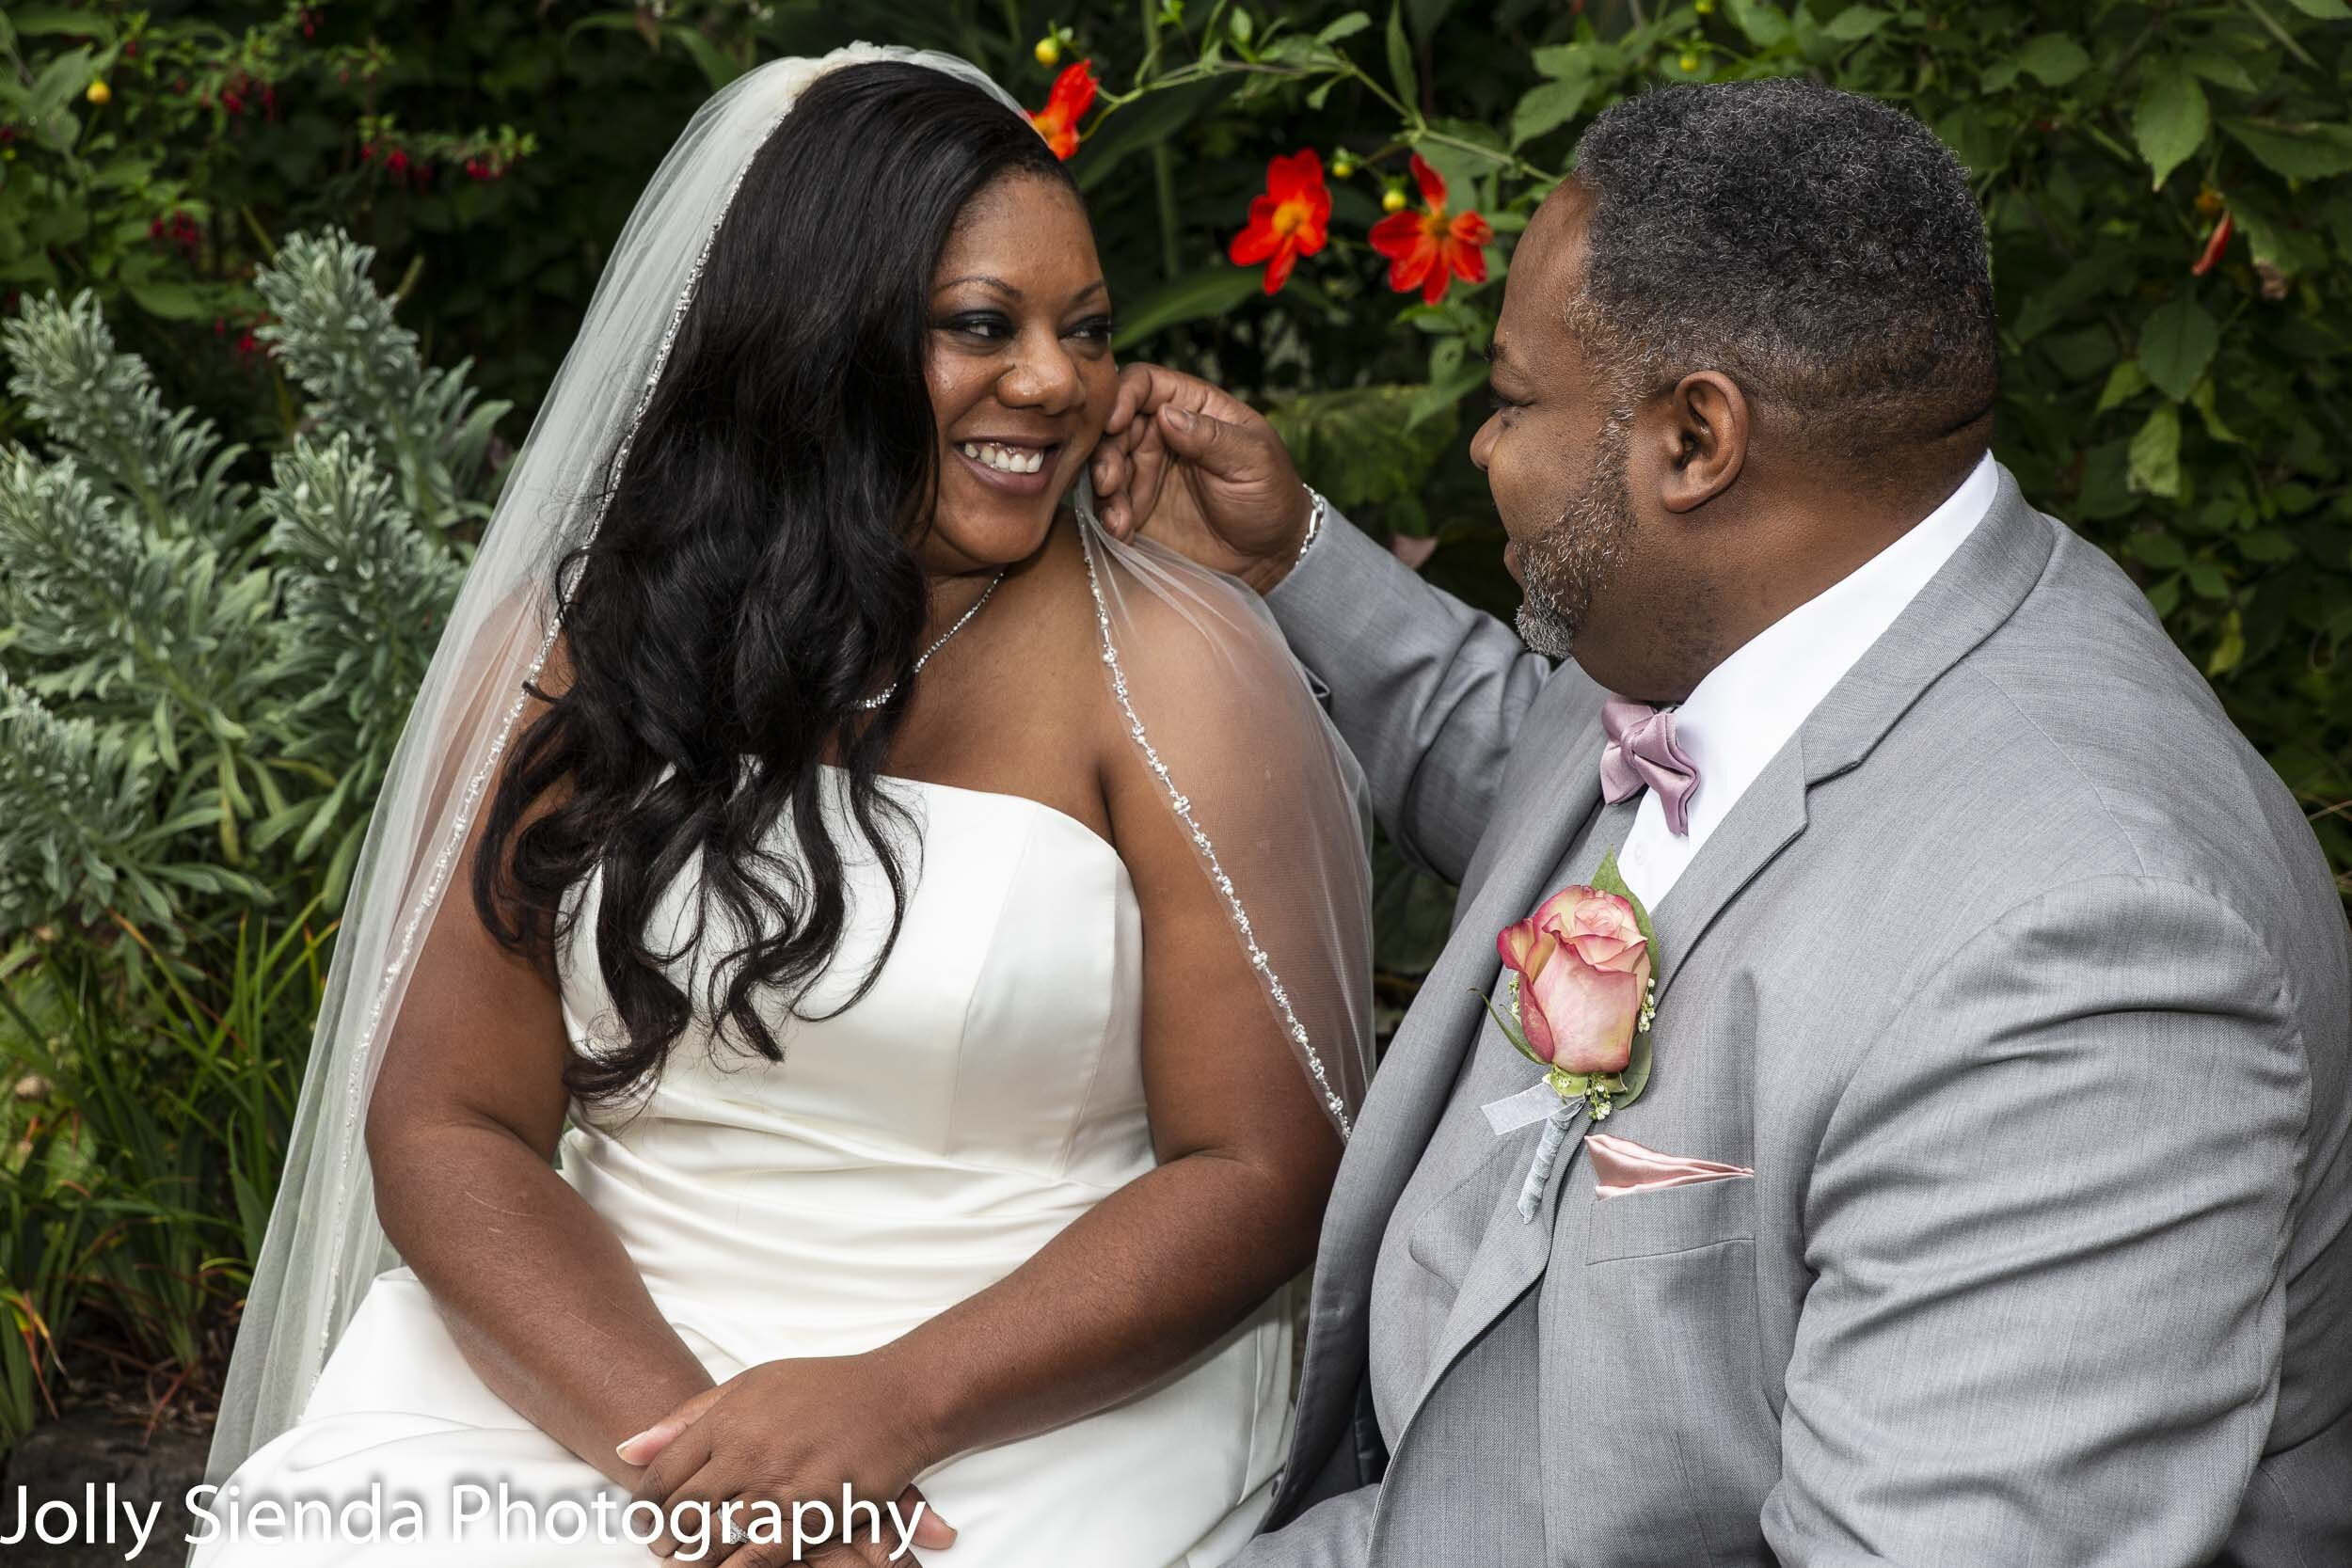 Nioka and Jefferson wedding portraiture by Jolly Sienda Photography at Heronswood Garden